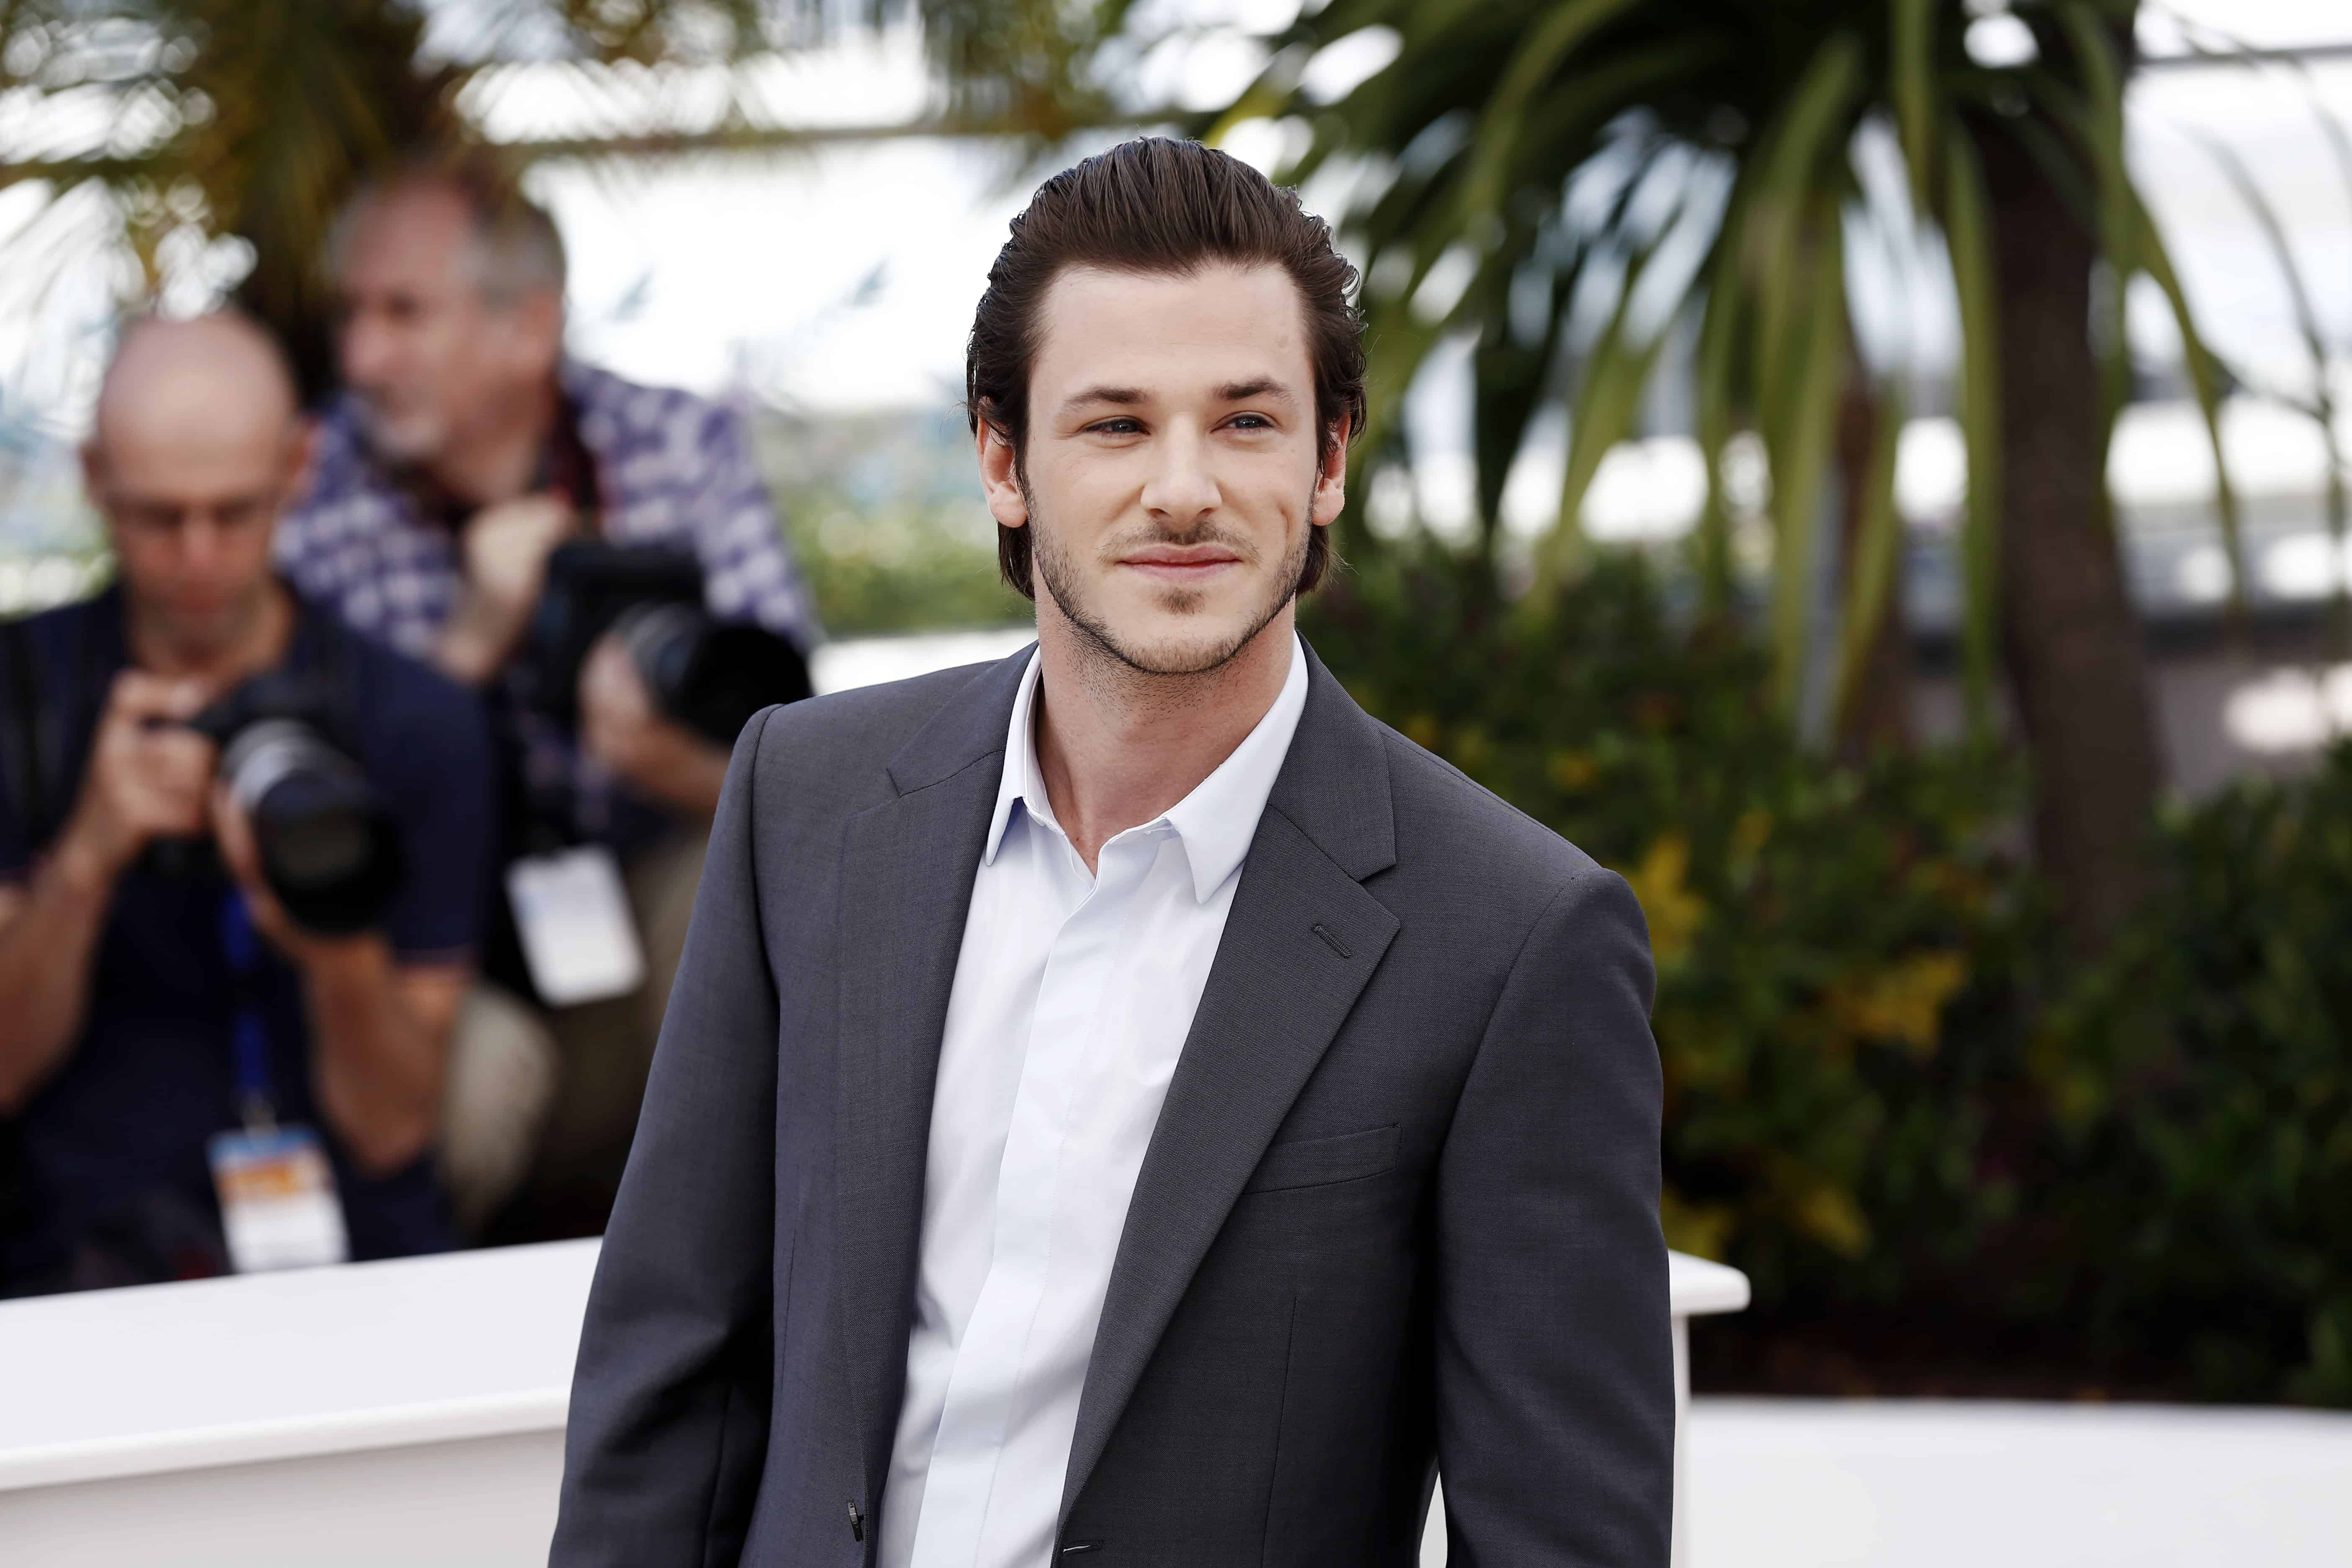 Gaspard Ulliel sporting a beautiful slicked back hairstyle during the 67th Cannes Film Festival.